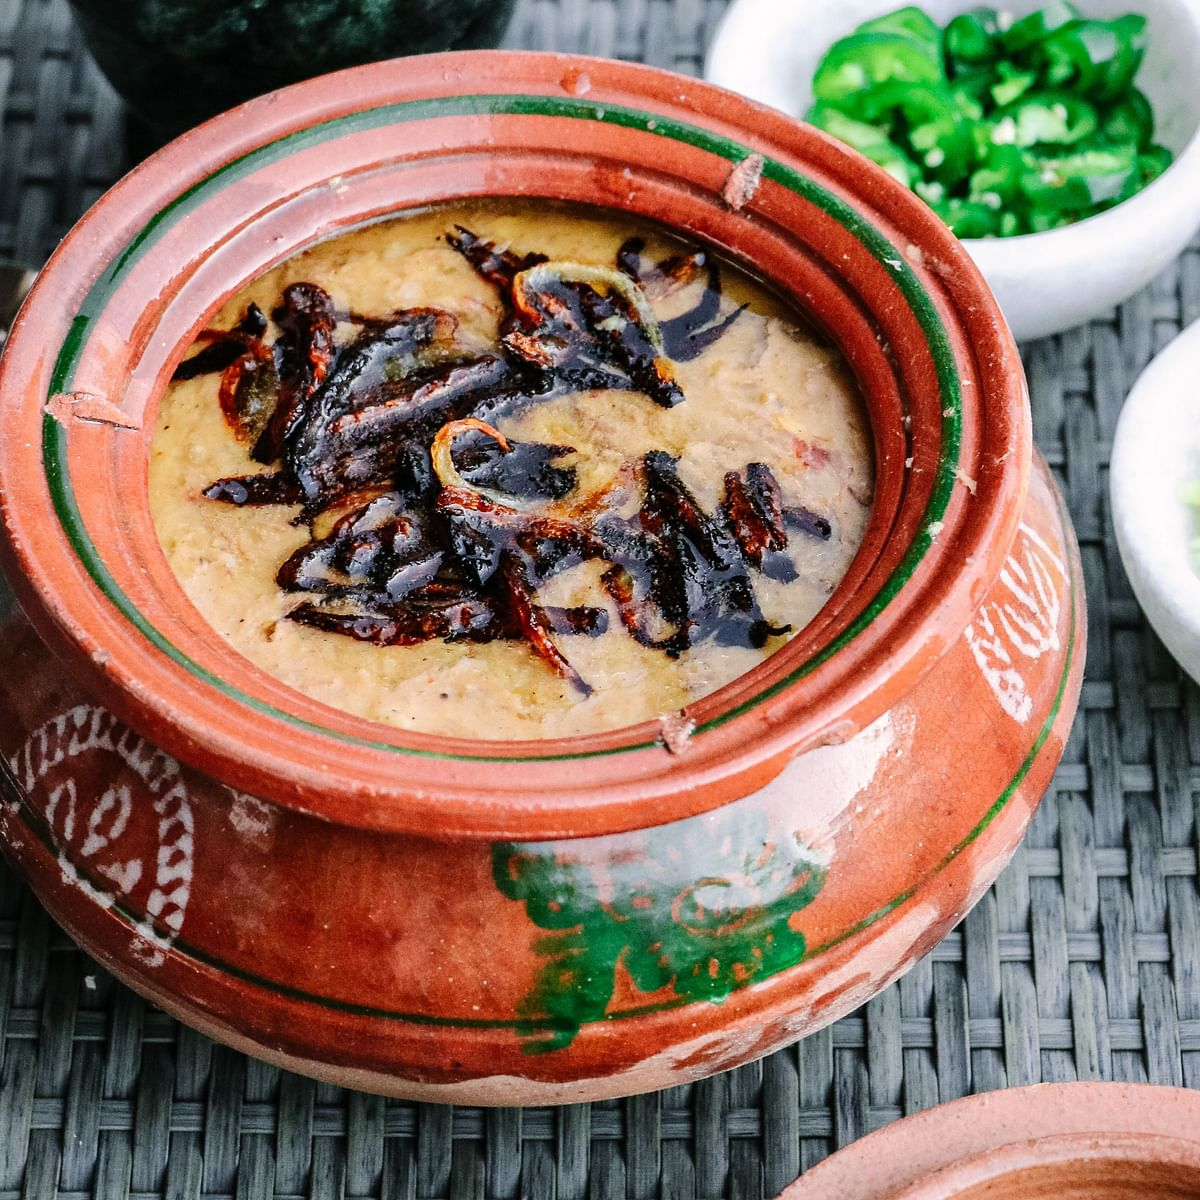 Mumbai: Make this Eid even more special with Hyderabad's Haleem delivered at your doorstep